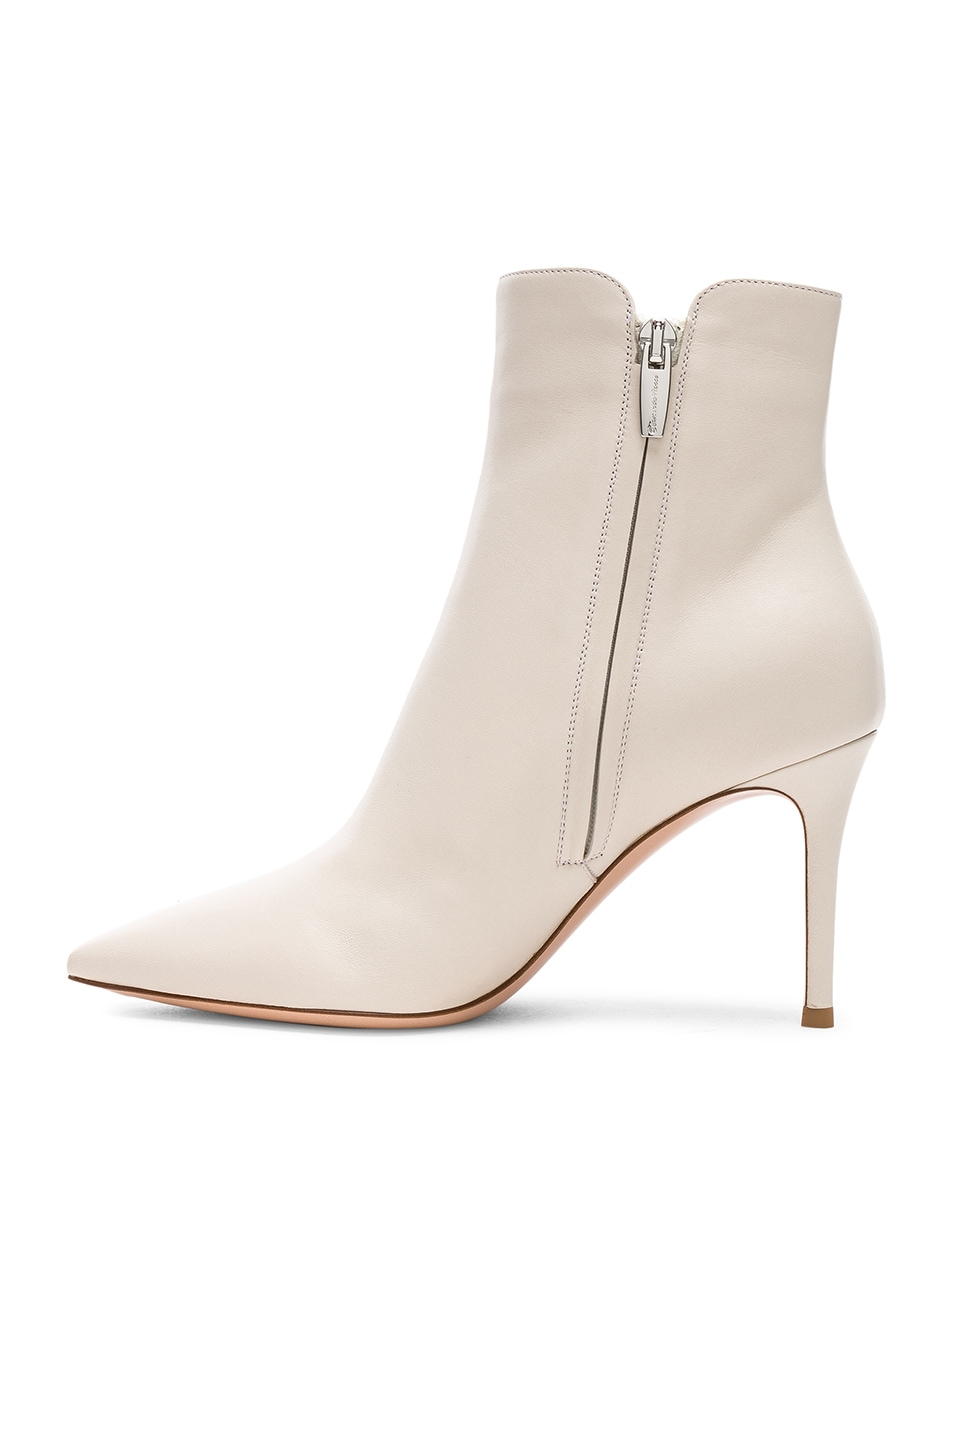 Image 5 of Gianvito Rossi Nappa Leather Levy Ankle Boots in Off White